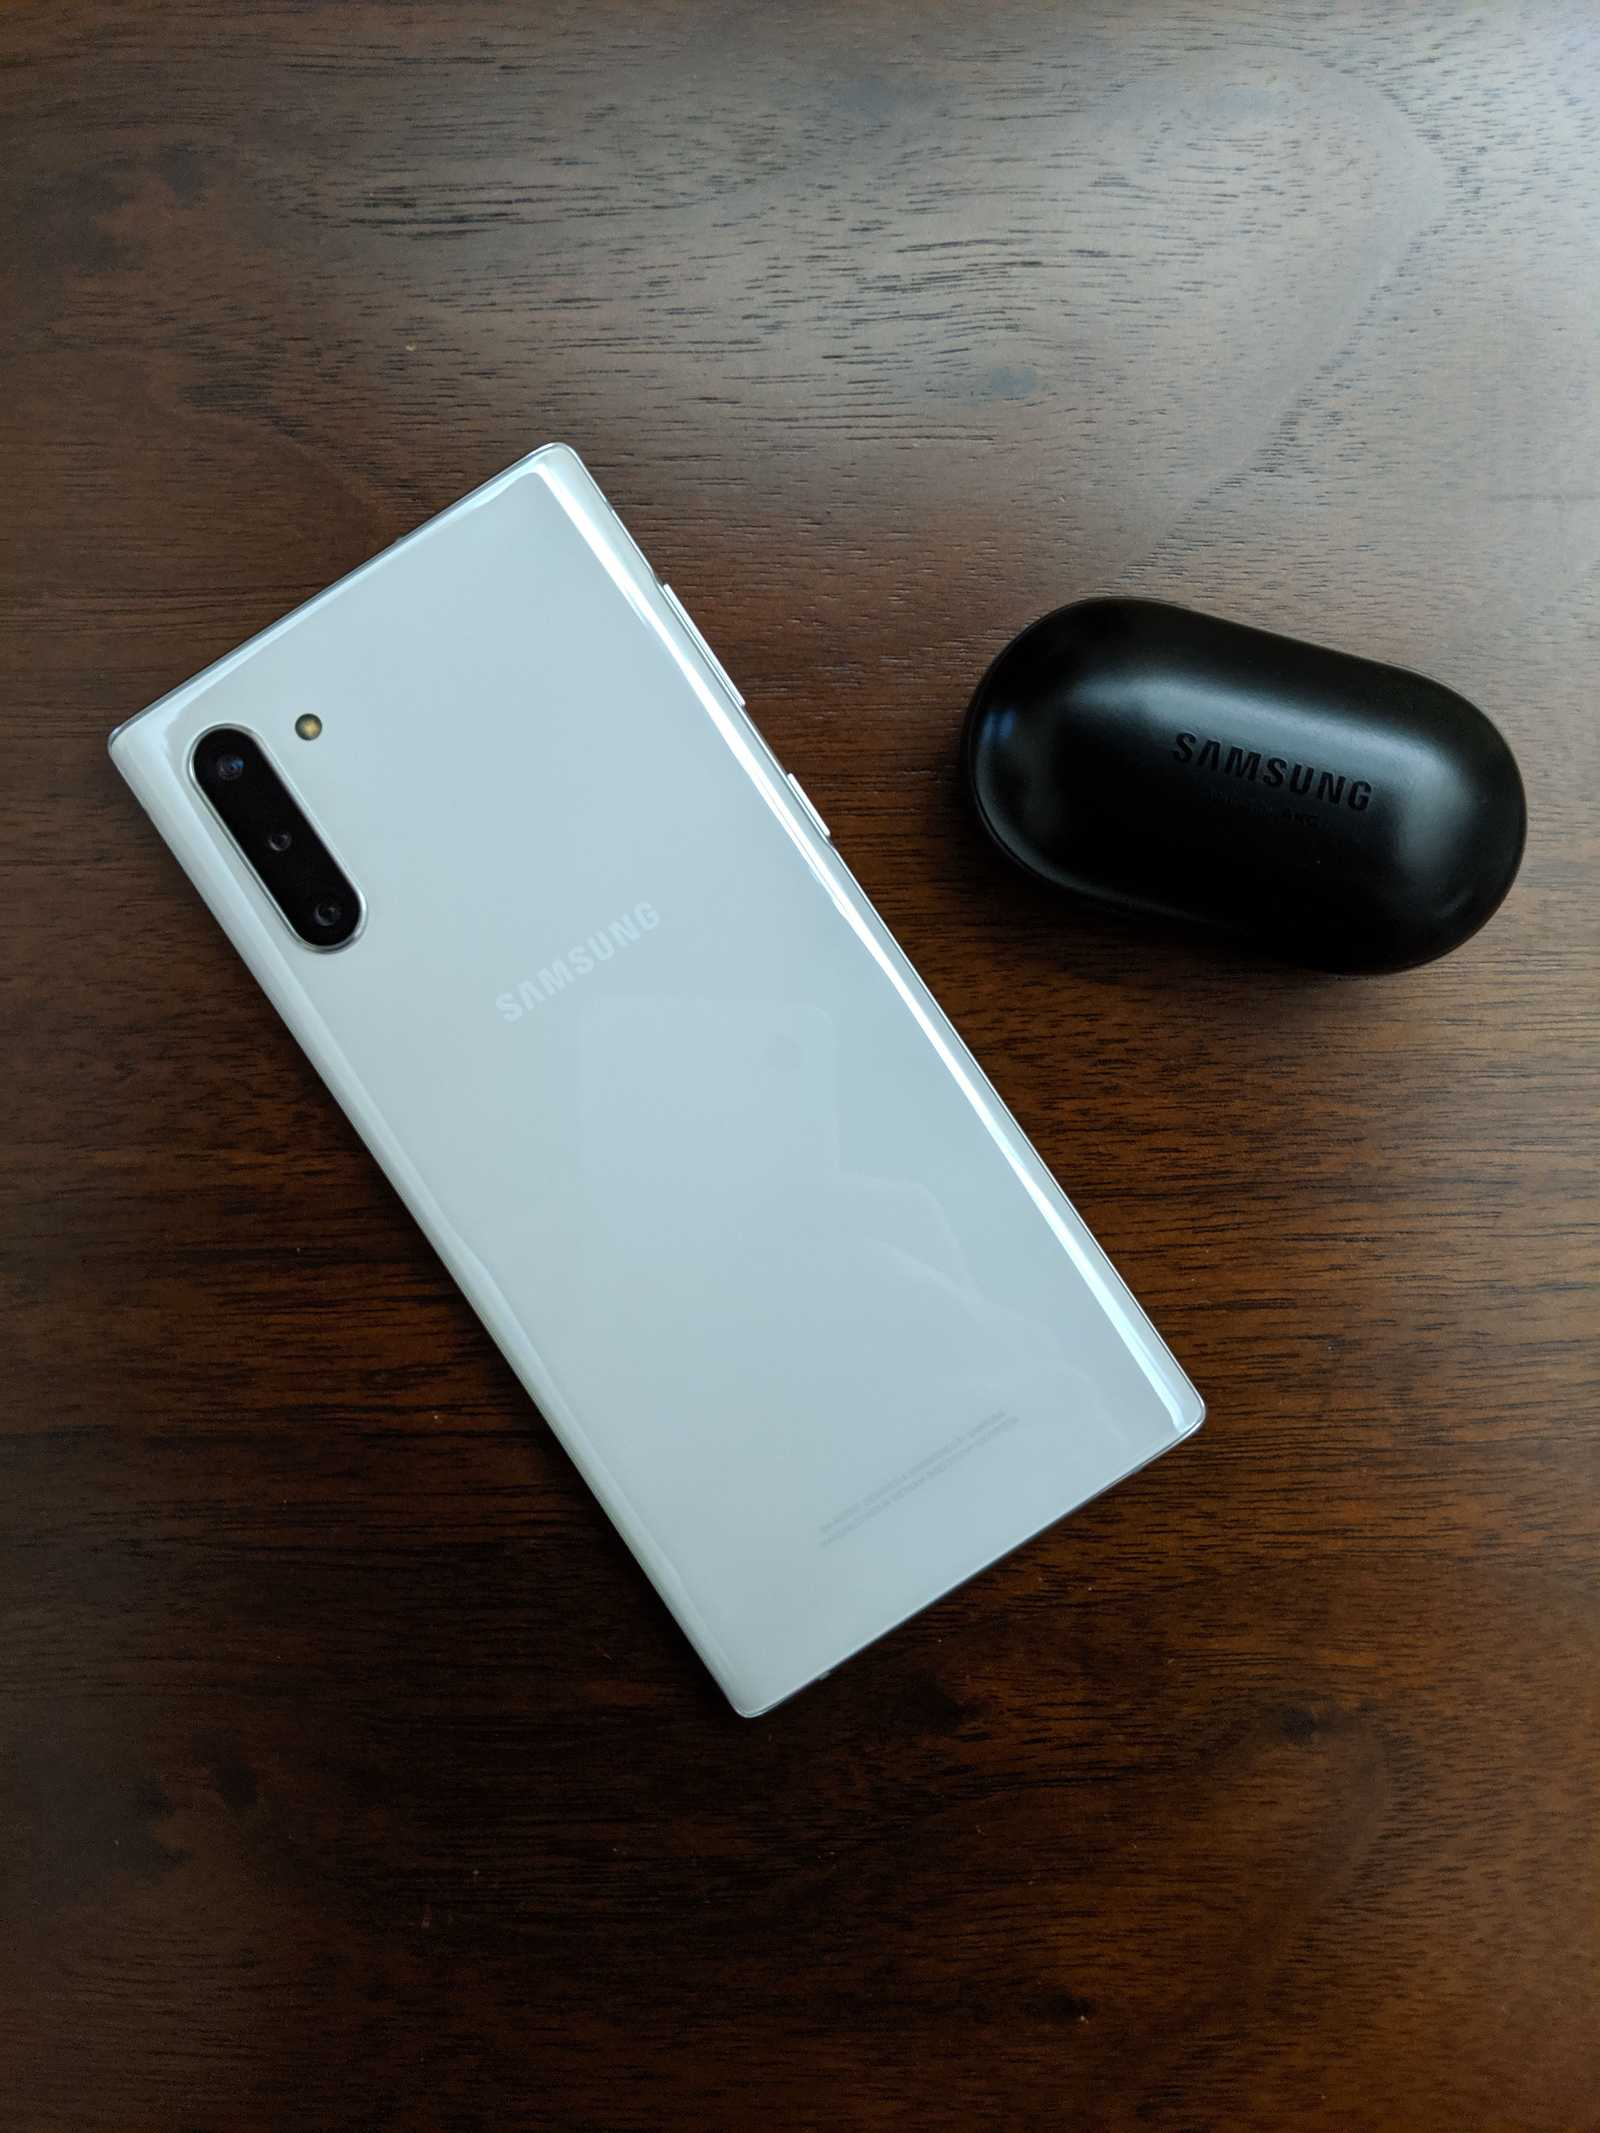 Samsung Galaxy Note 10 with the Galaxy Buds on a table